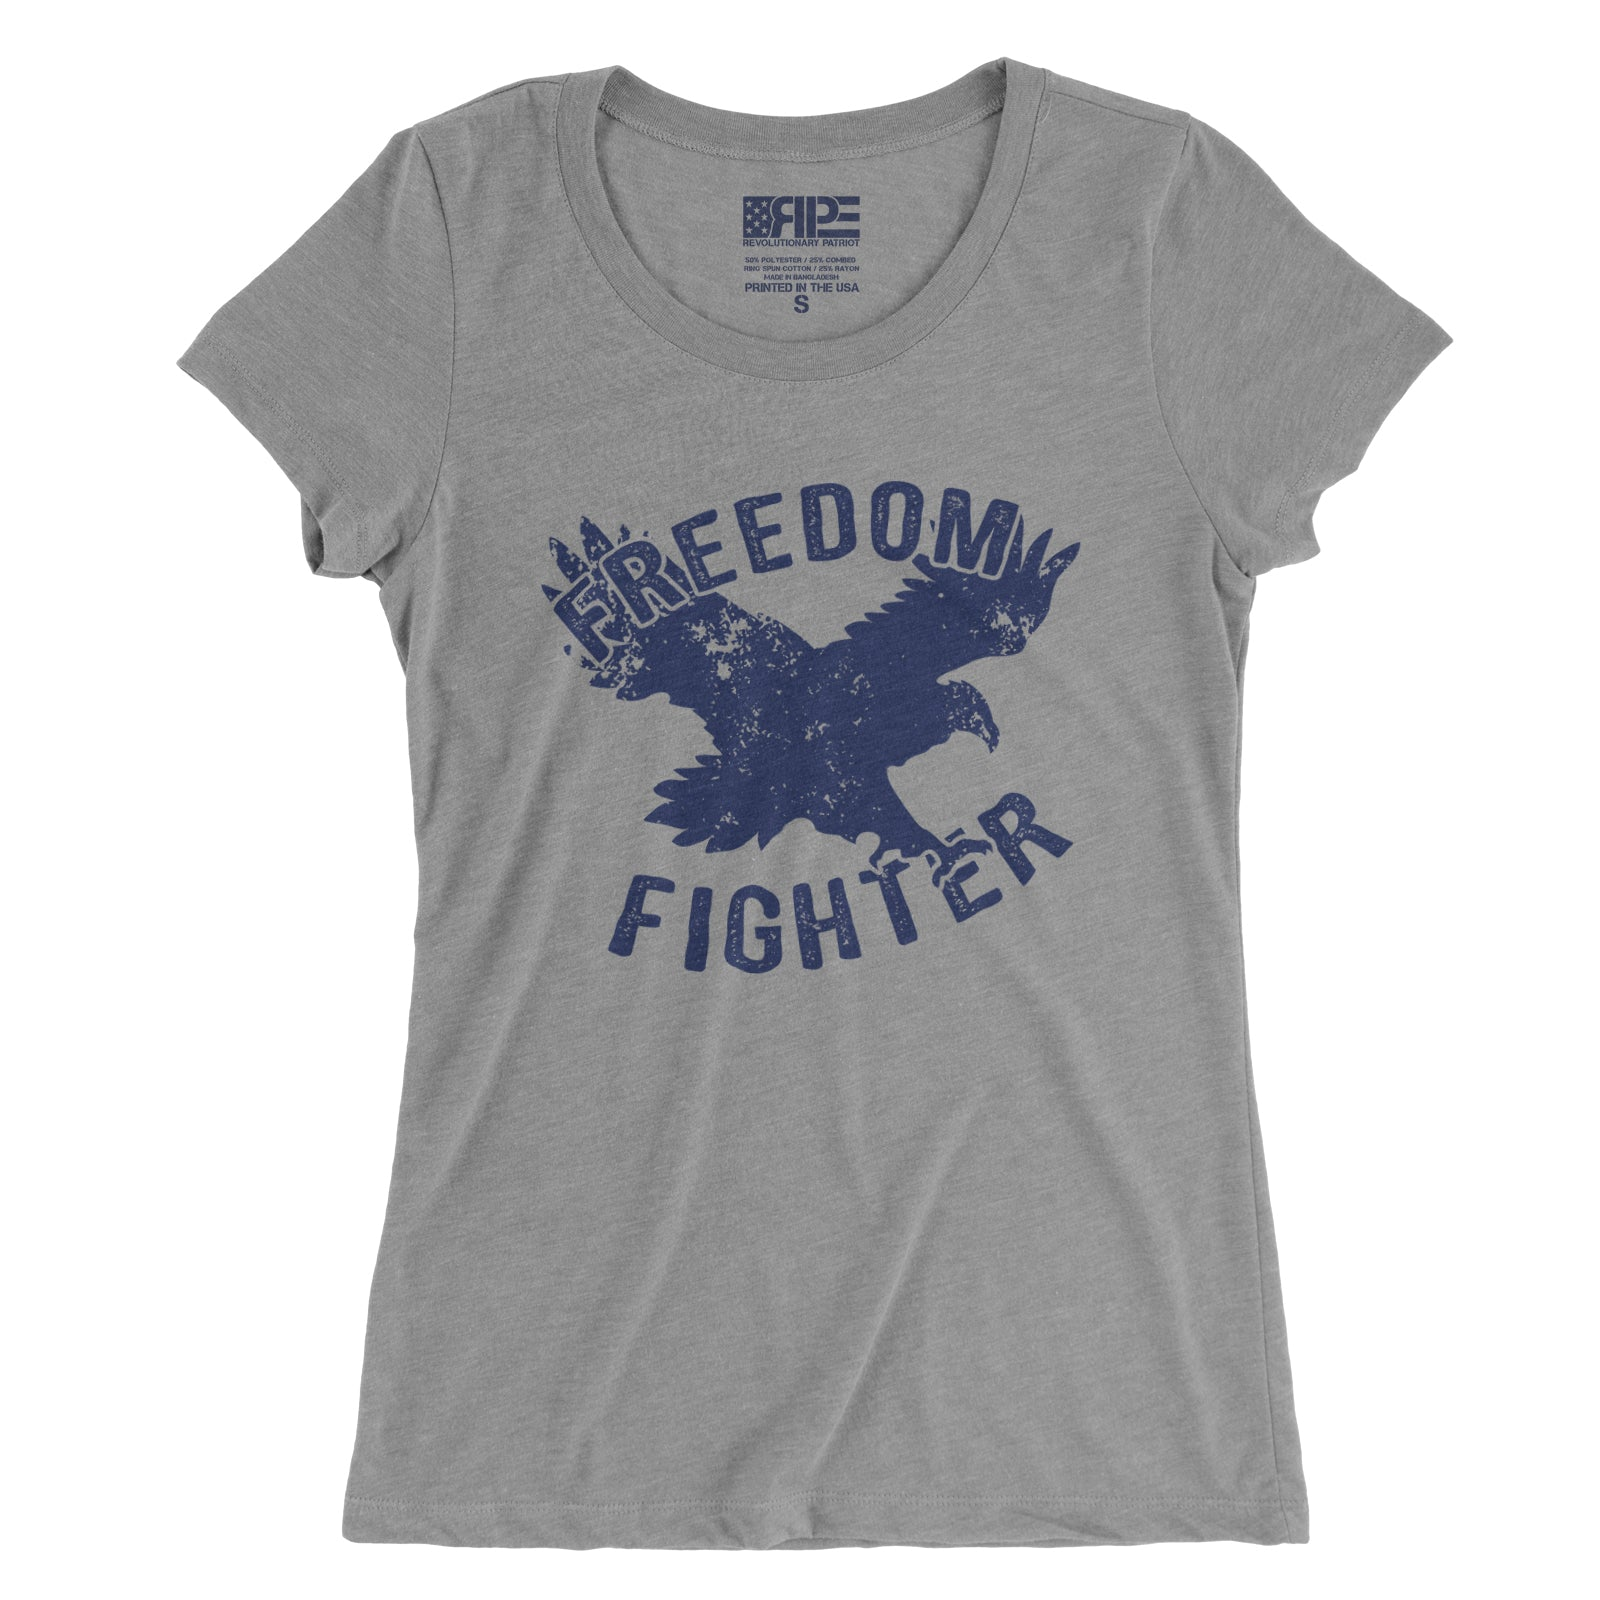 Freedom Fighter Women's - (Grey) - Revolutionary Patriot